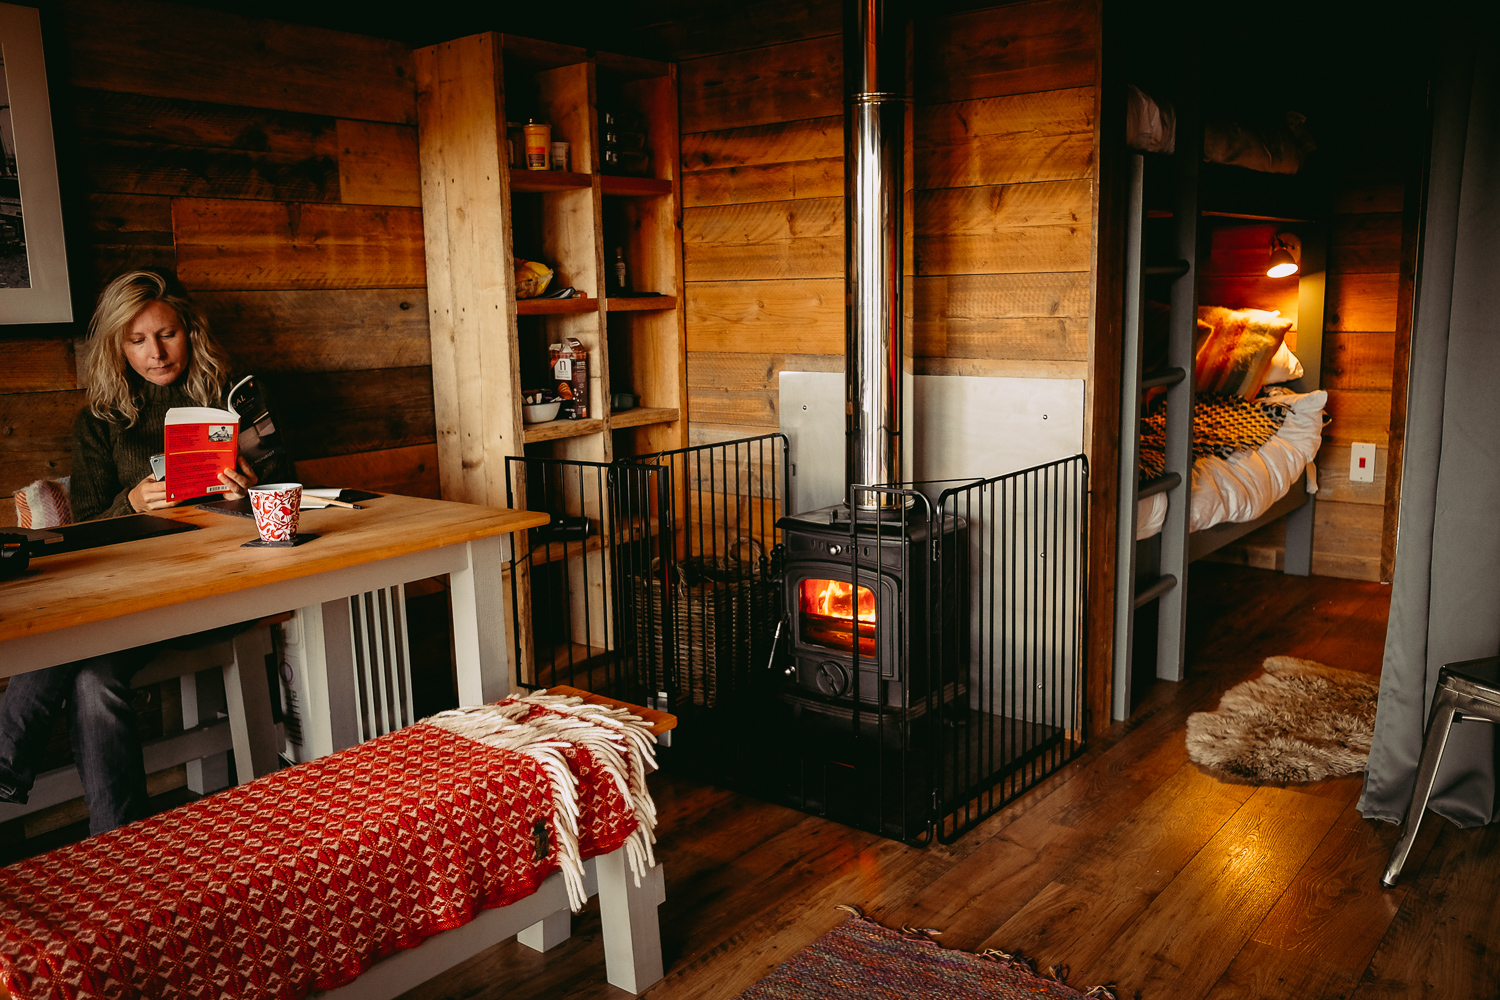 Planning a Weekend in Snowdonia  - Llechwedd Slate Mines Glamping